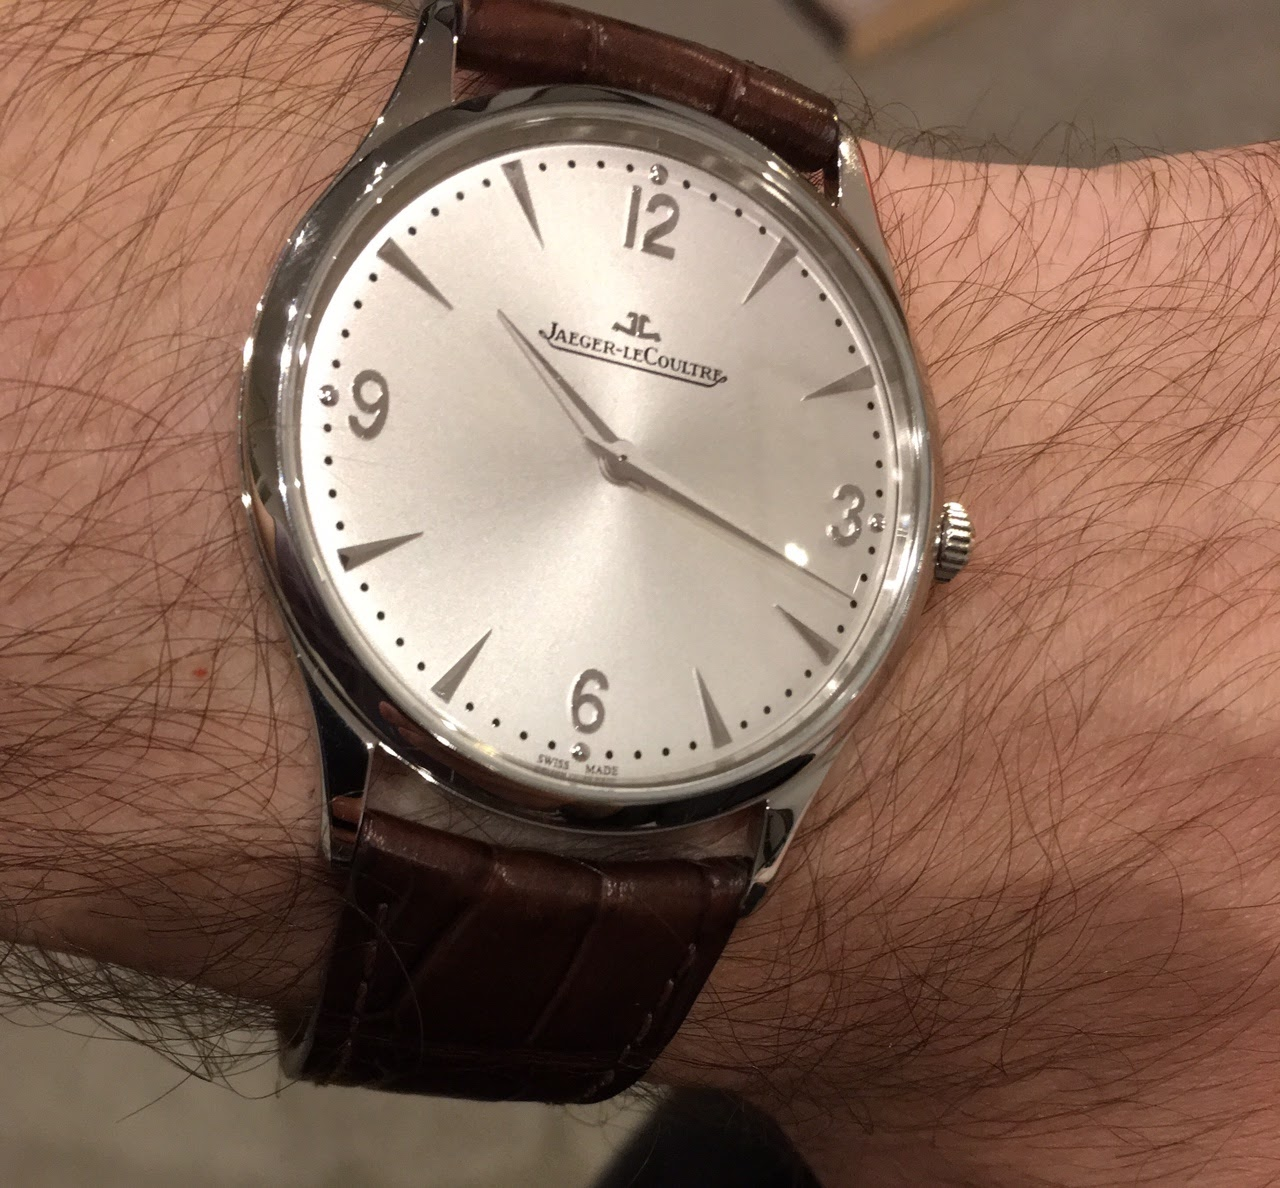 Jlc Master Ultra Thin 38mm Still One Of The Best Dress Watches Ever Imho